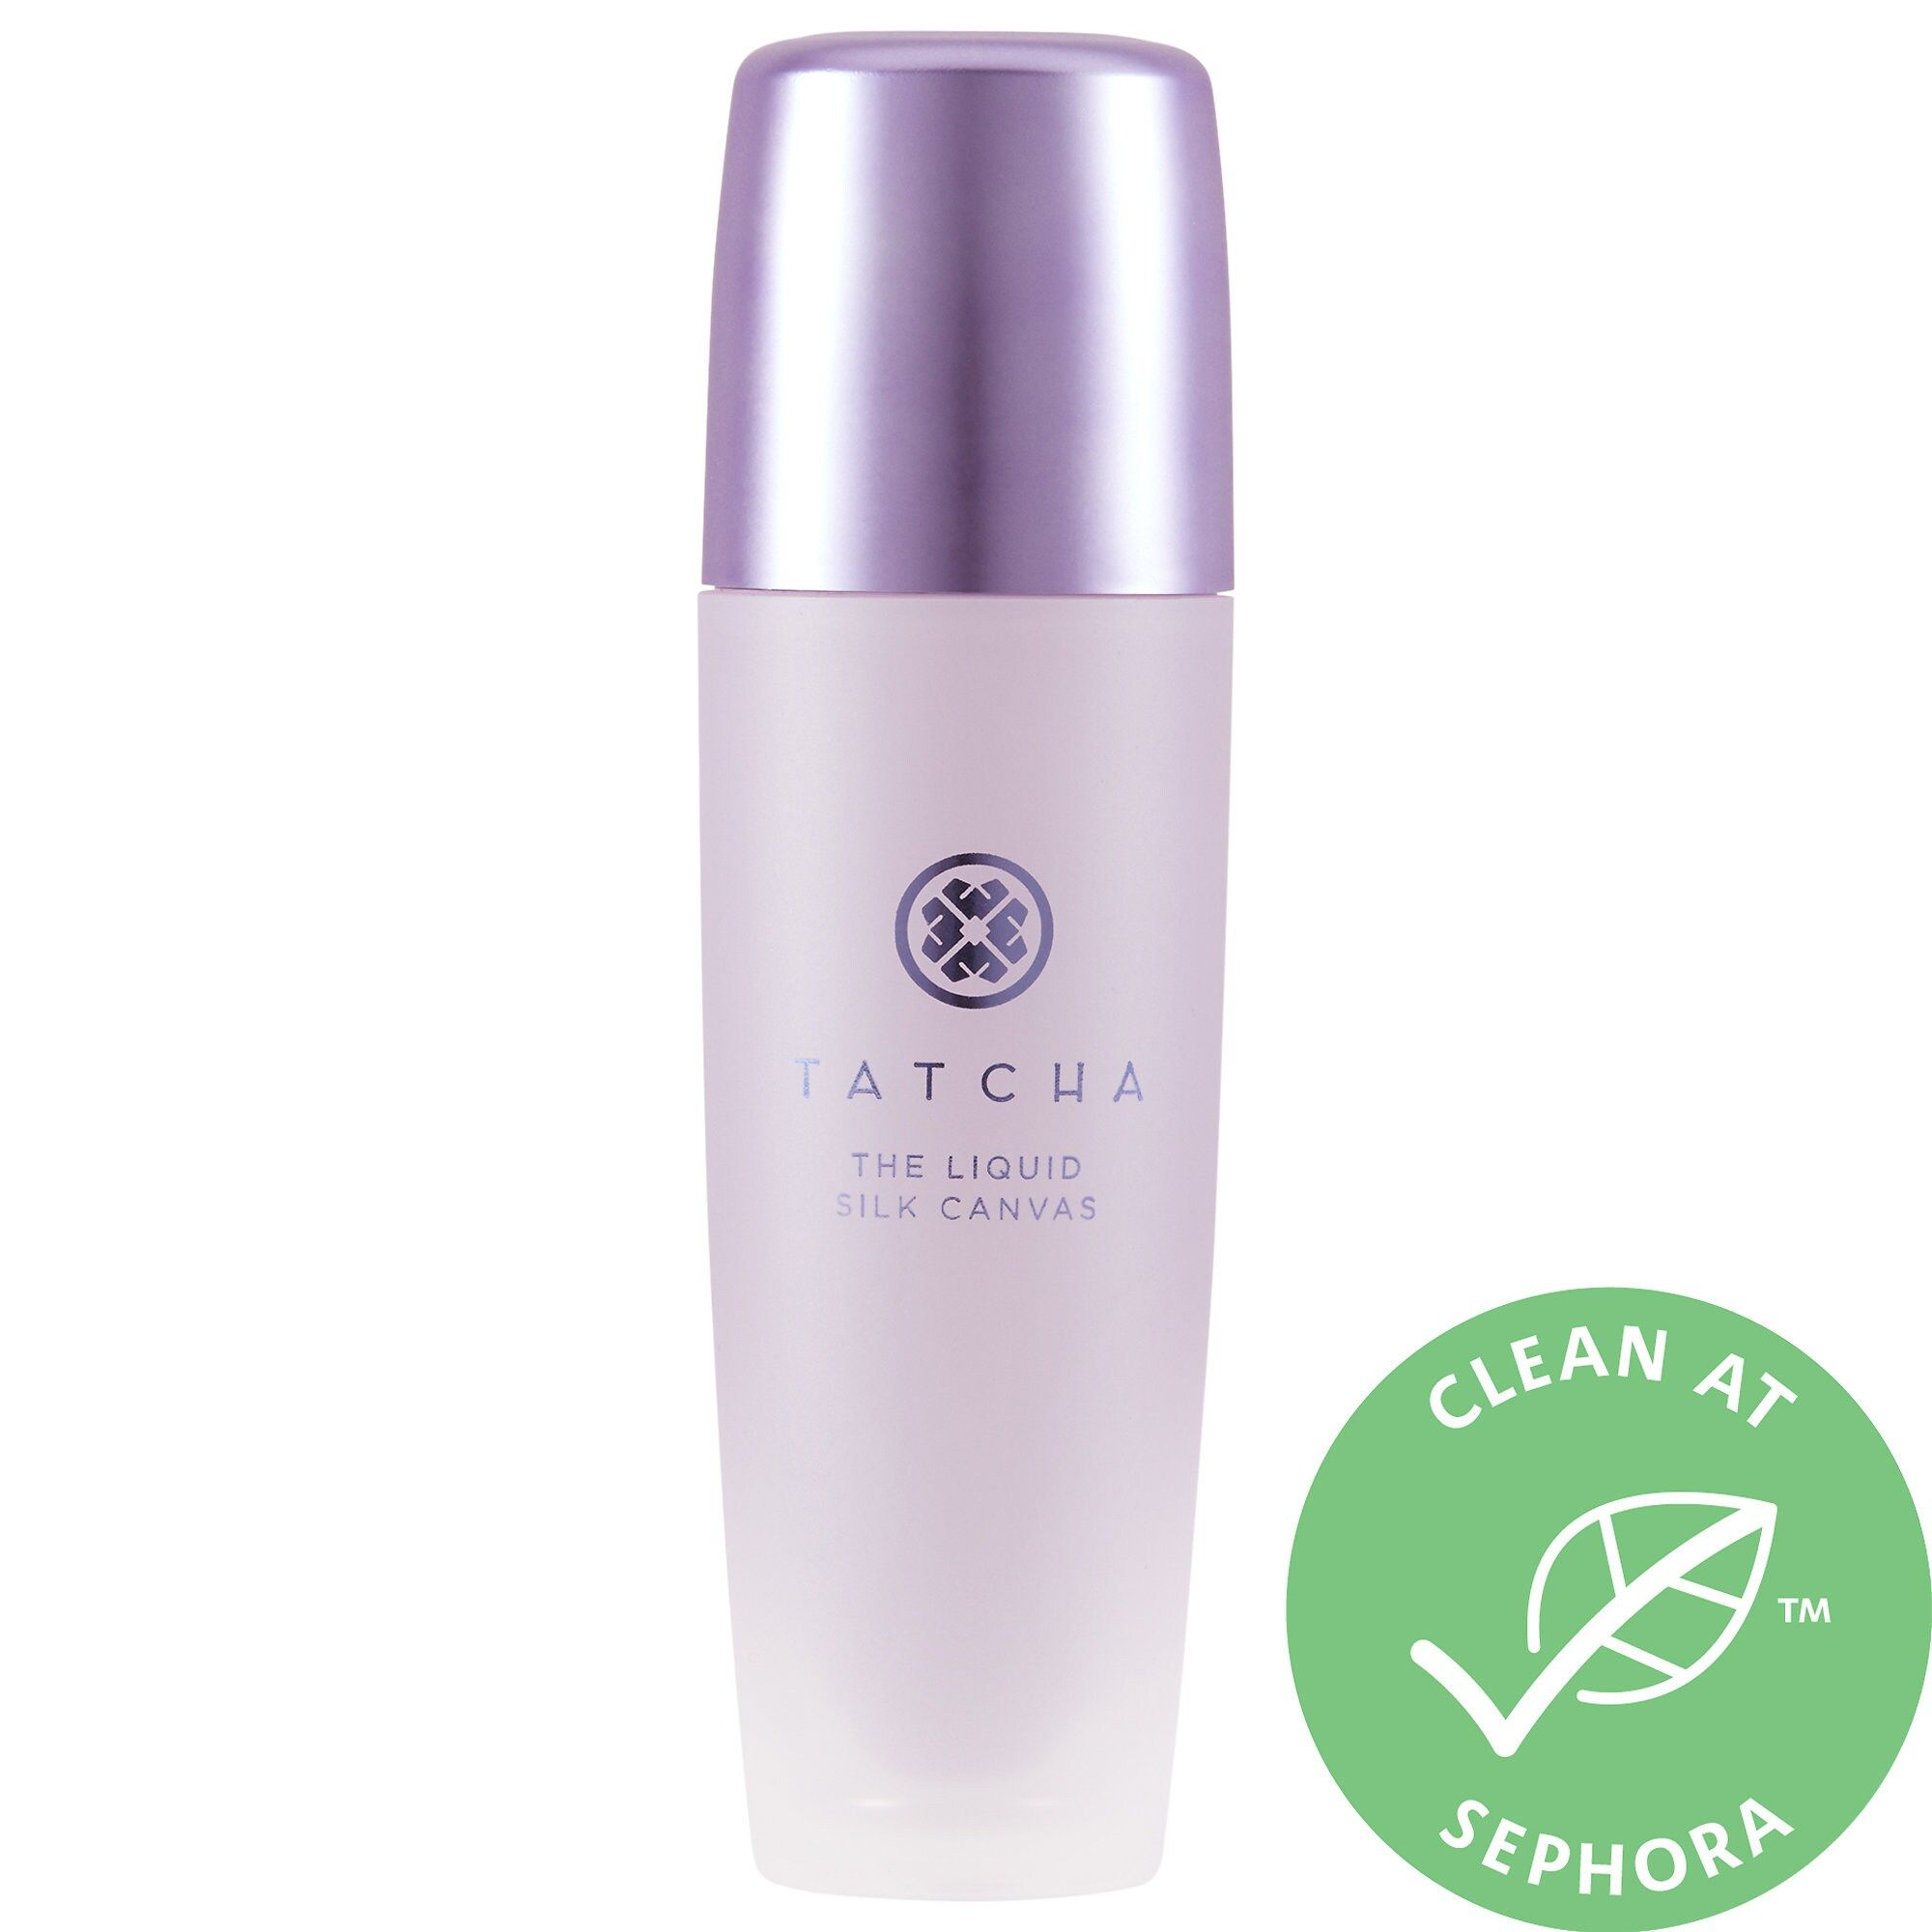 The Liquid Silk Canvas Featherweight Protective Primer in